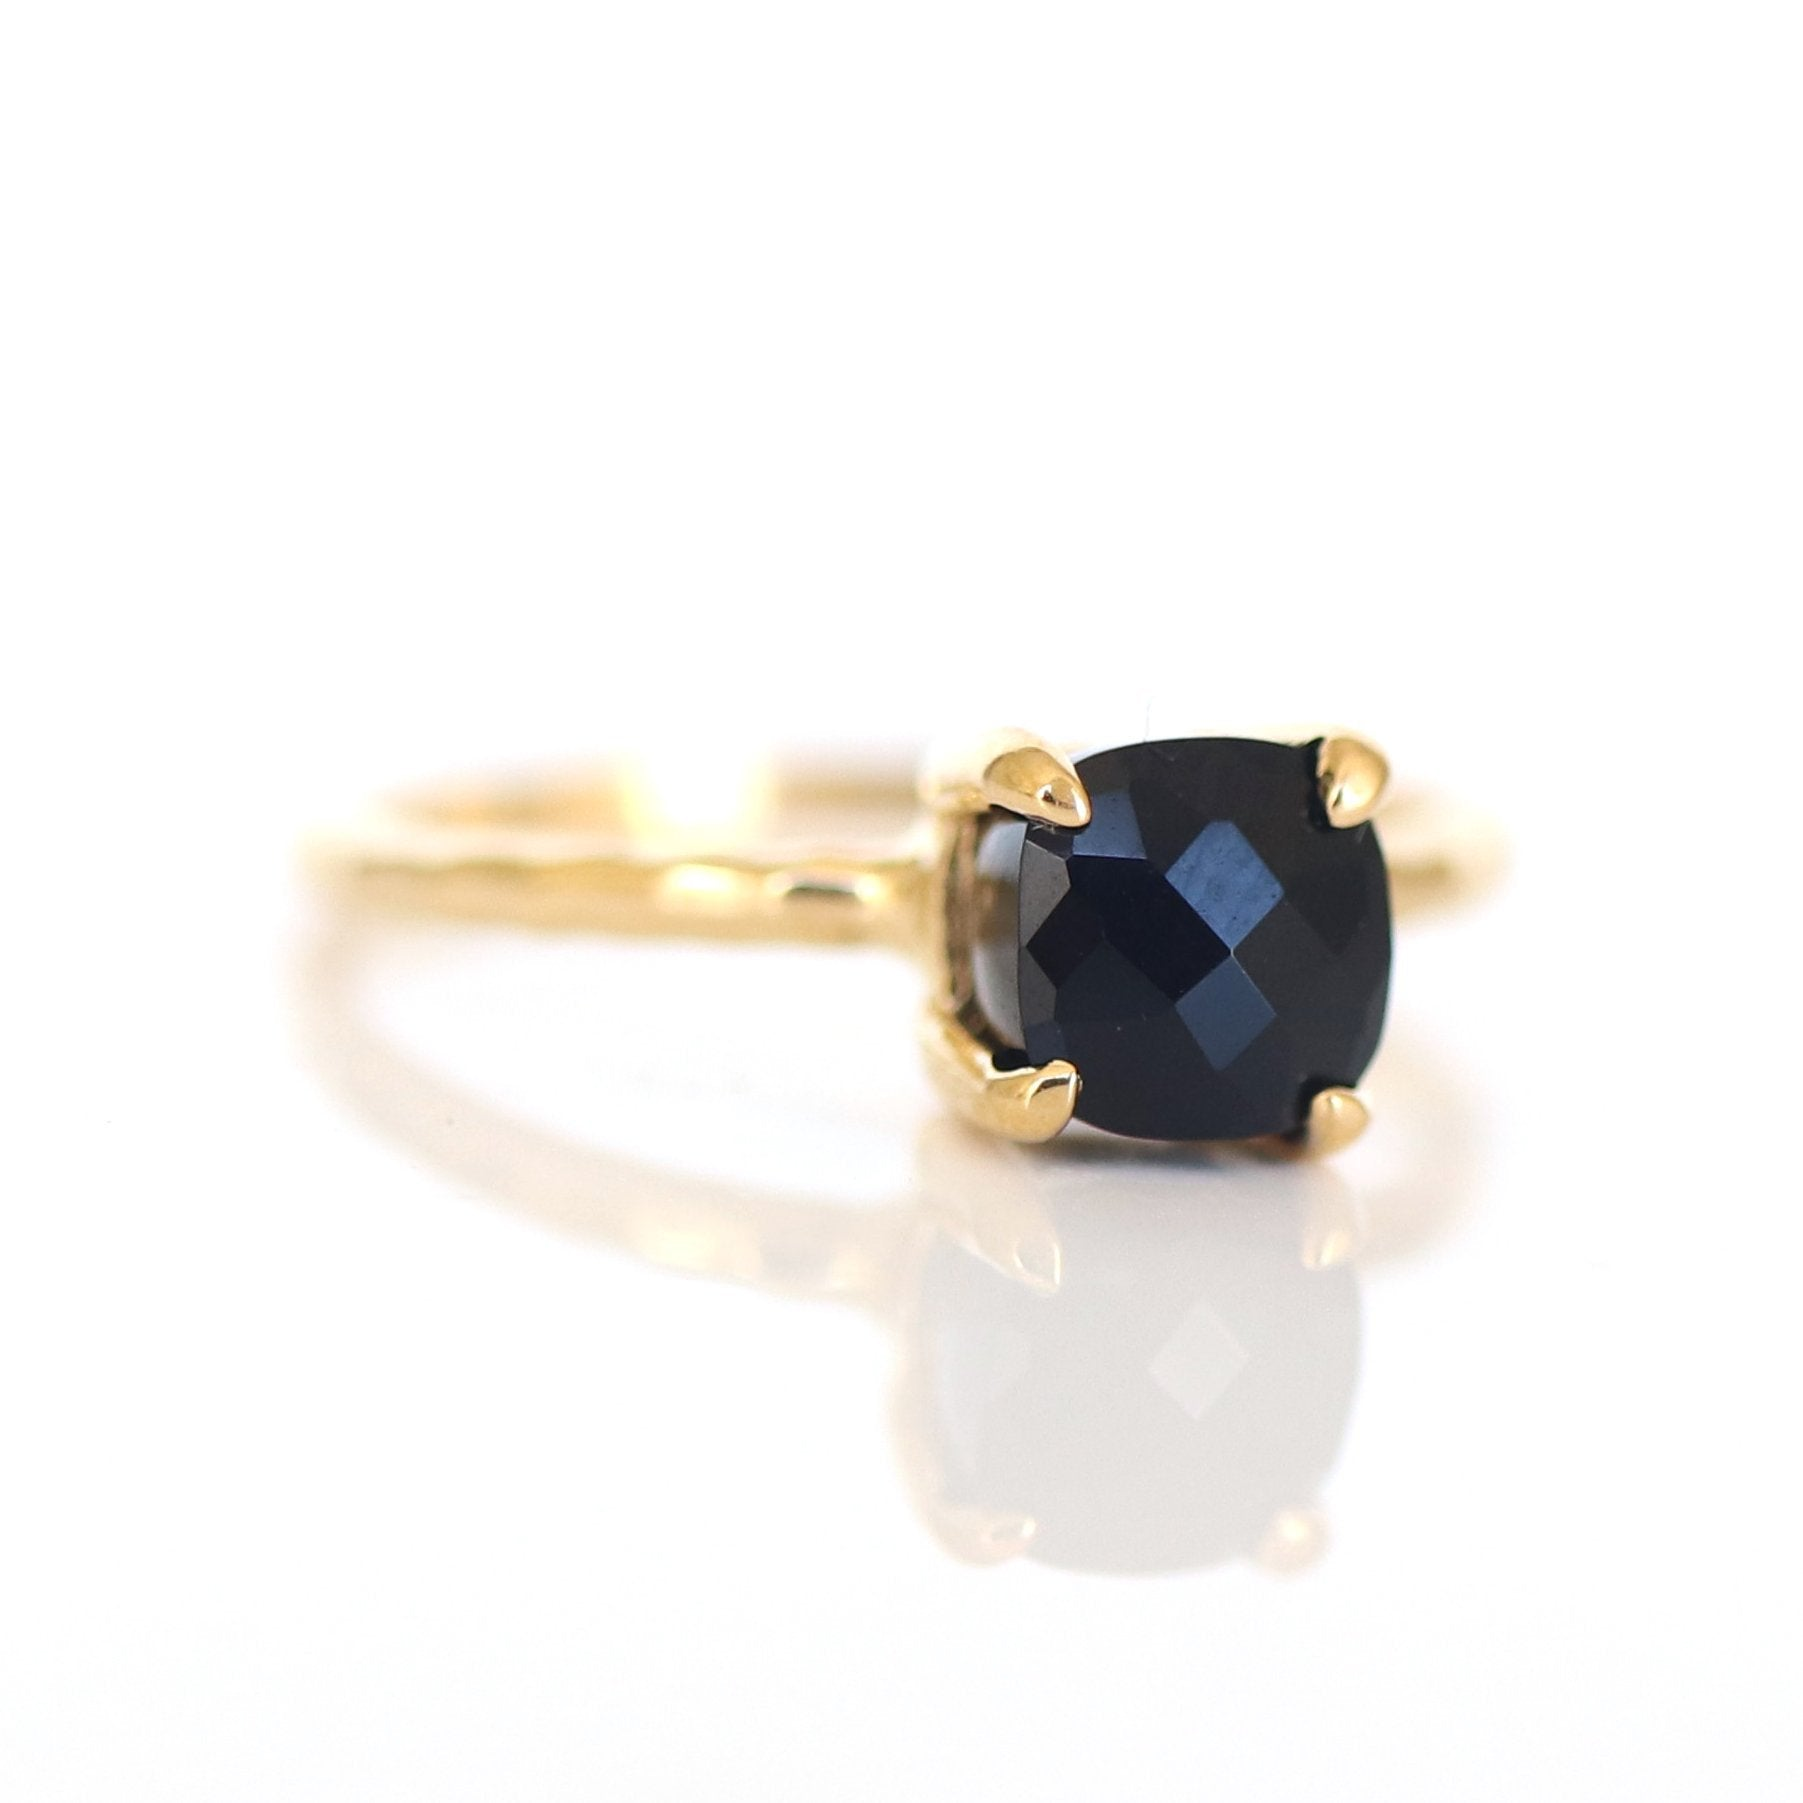 MINI PROTECT RING BLACK ONYX & GOLD - SO PRETTY CARA COTTER